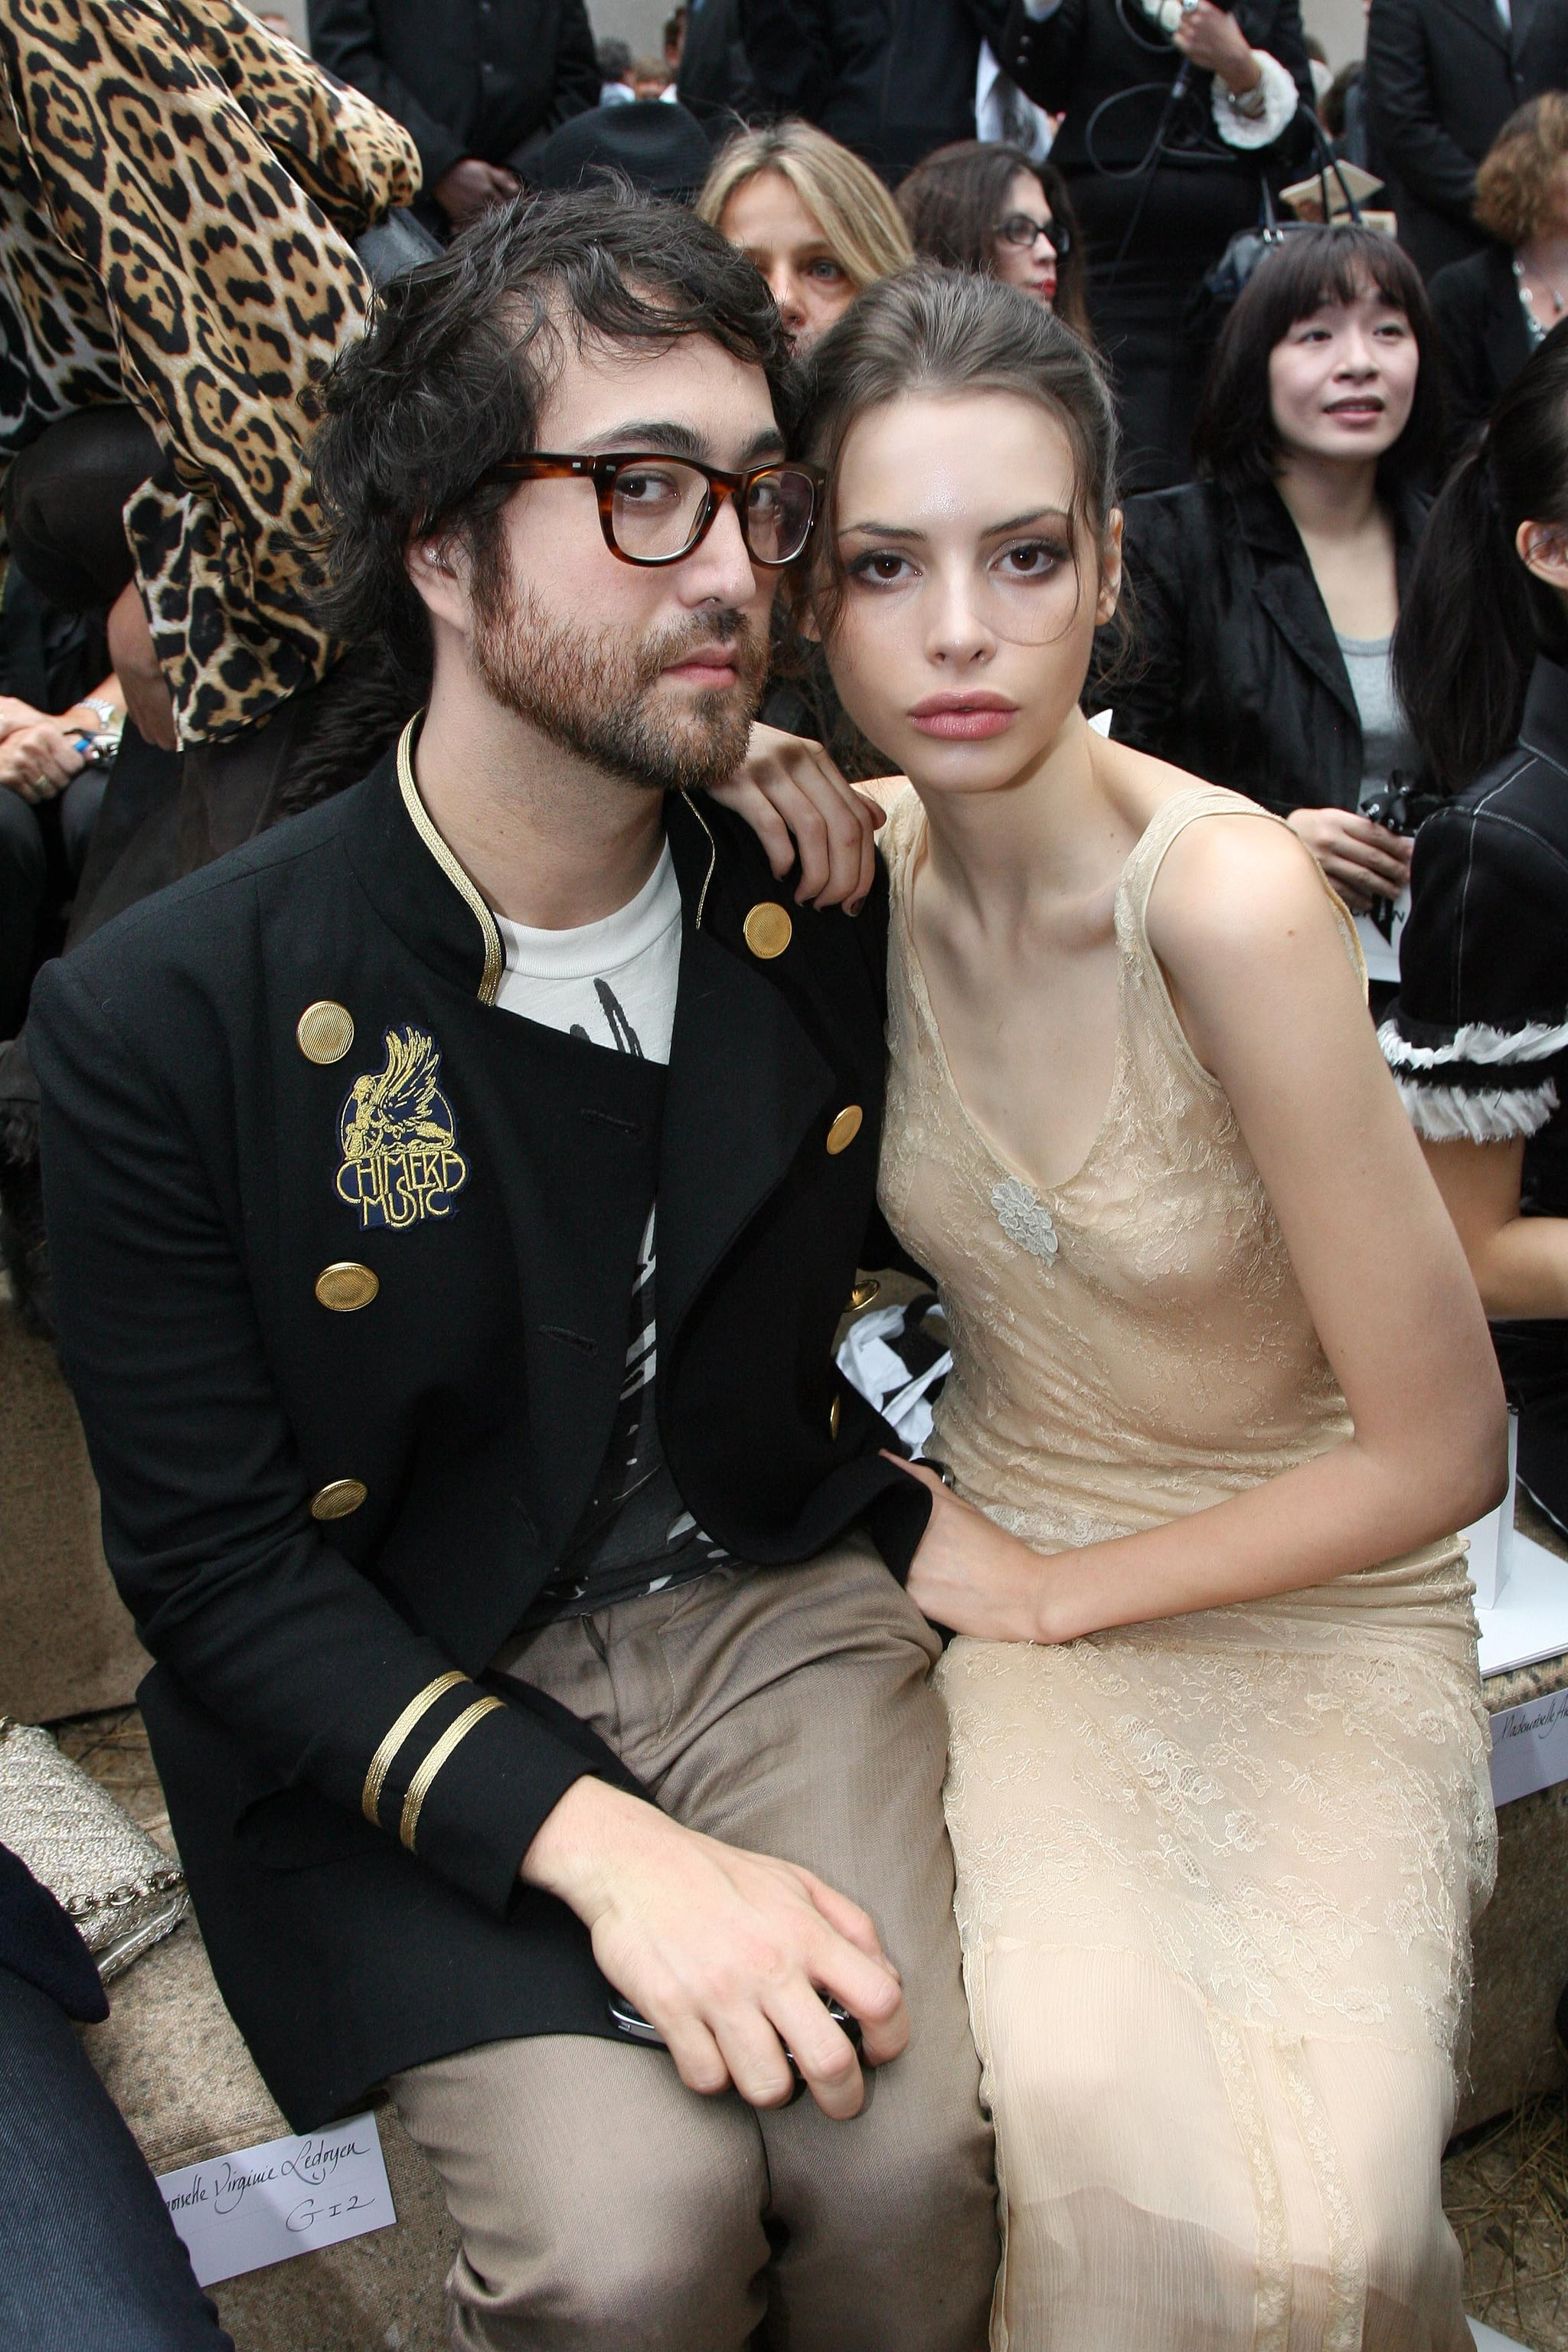 Sean Lennon and Charlotte Kemp Muhl have been dating since they met at Coachella in 2005. They've participated in both music and fashion events together: here, they're pictured in the front row of Chanel's Spring 2010 runway show.